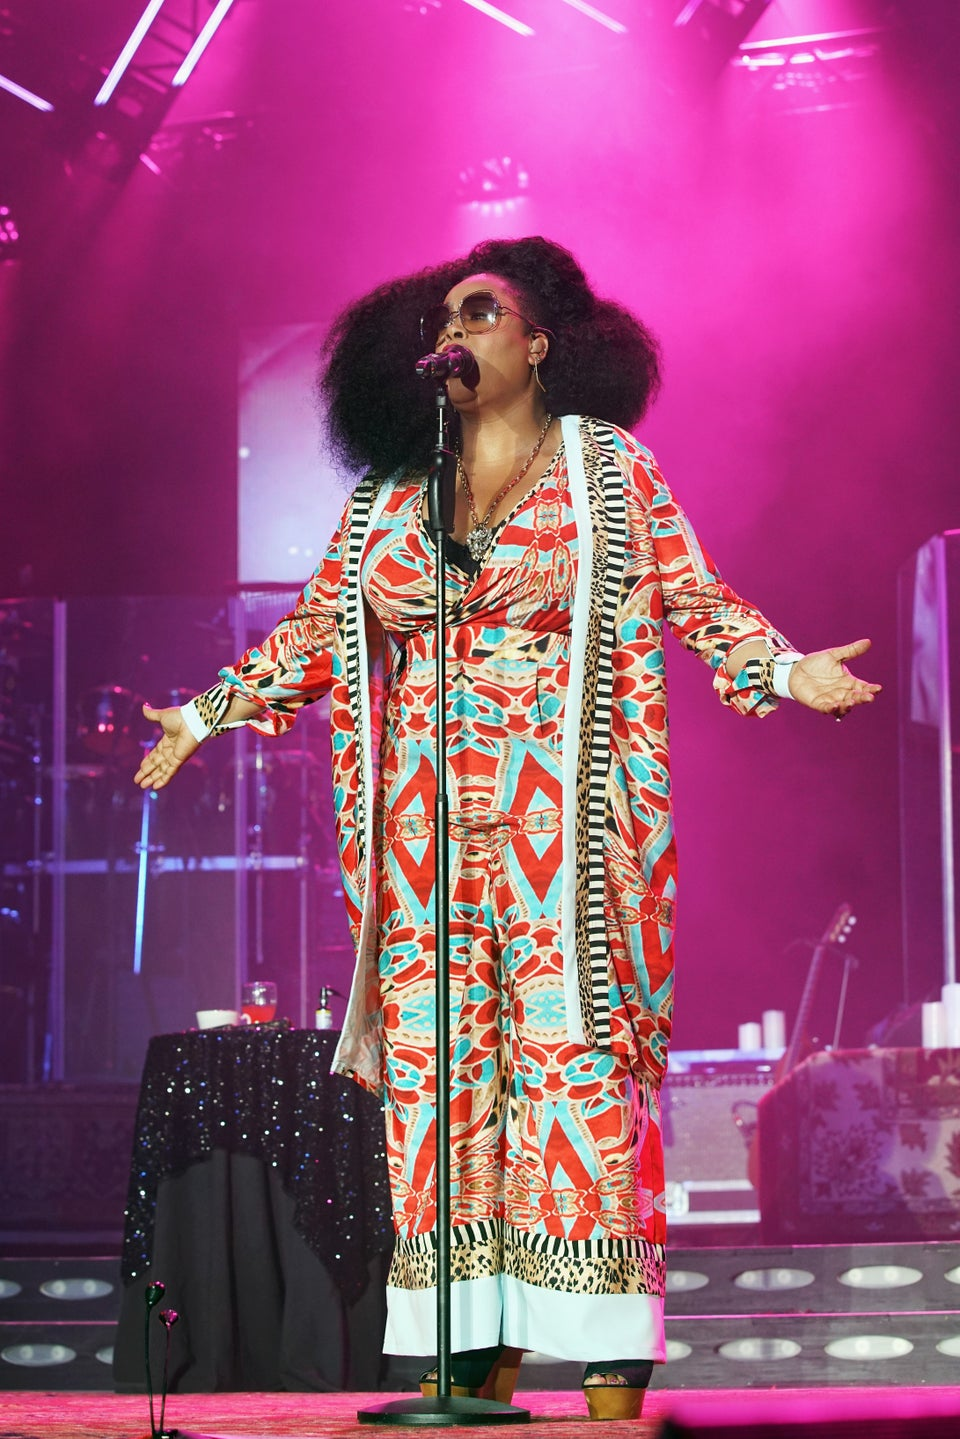 Jill Scott's Glorious Afro Is What Hair Dreams Are Made Of